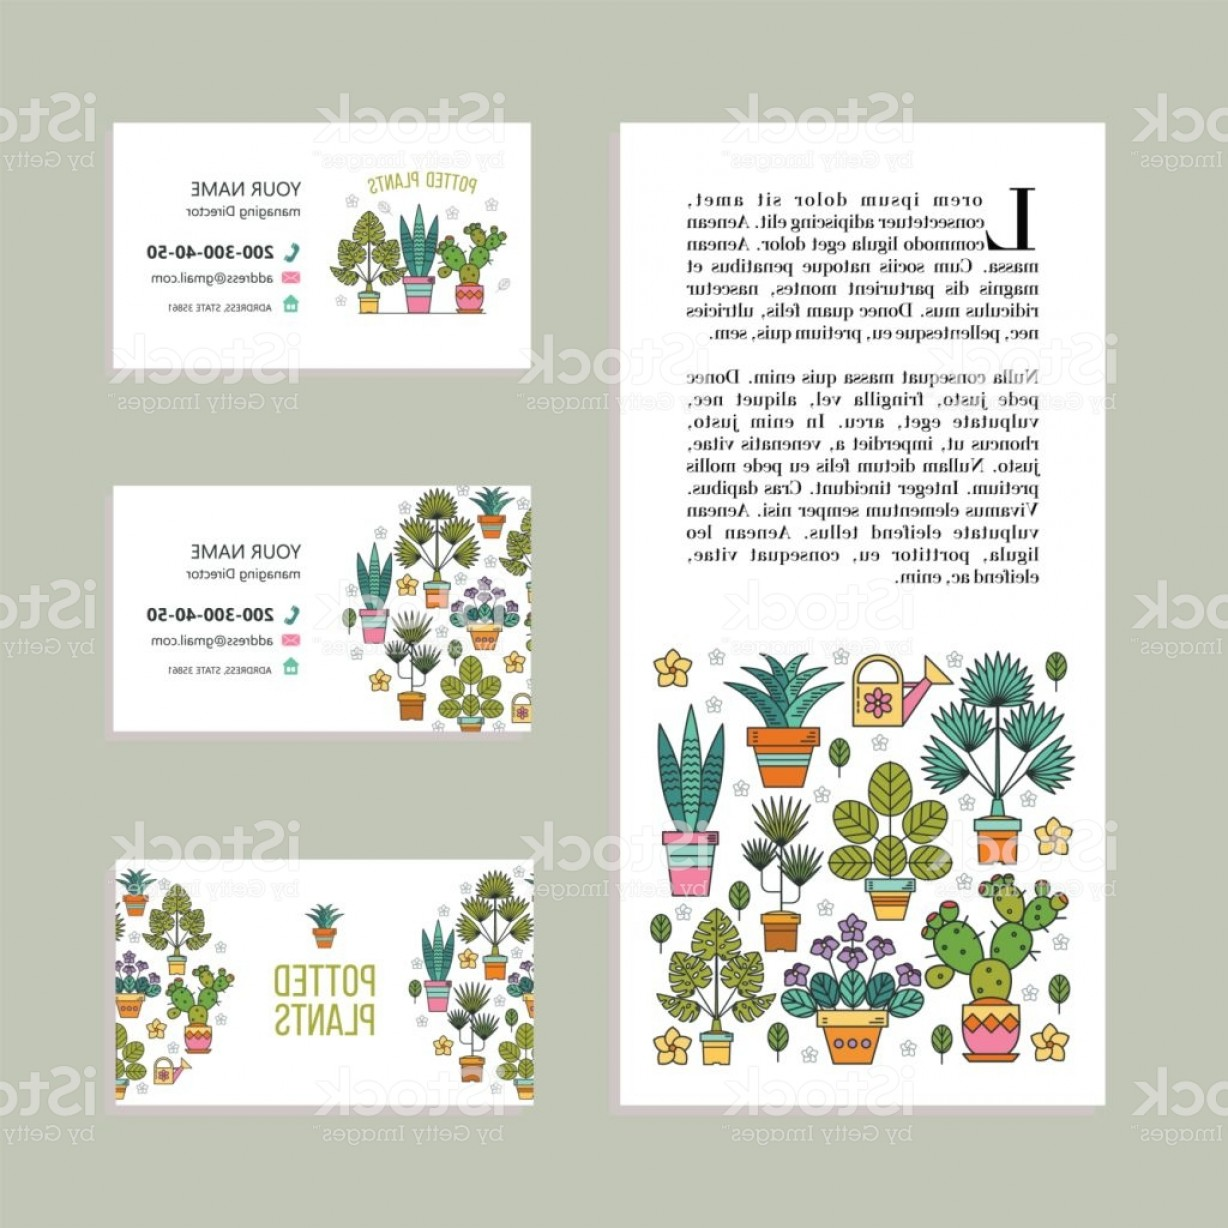 Plant Cards Vector: Potted Plants Vector Illustration Corporate Identity Business Cards Leaflet Flower Gm